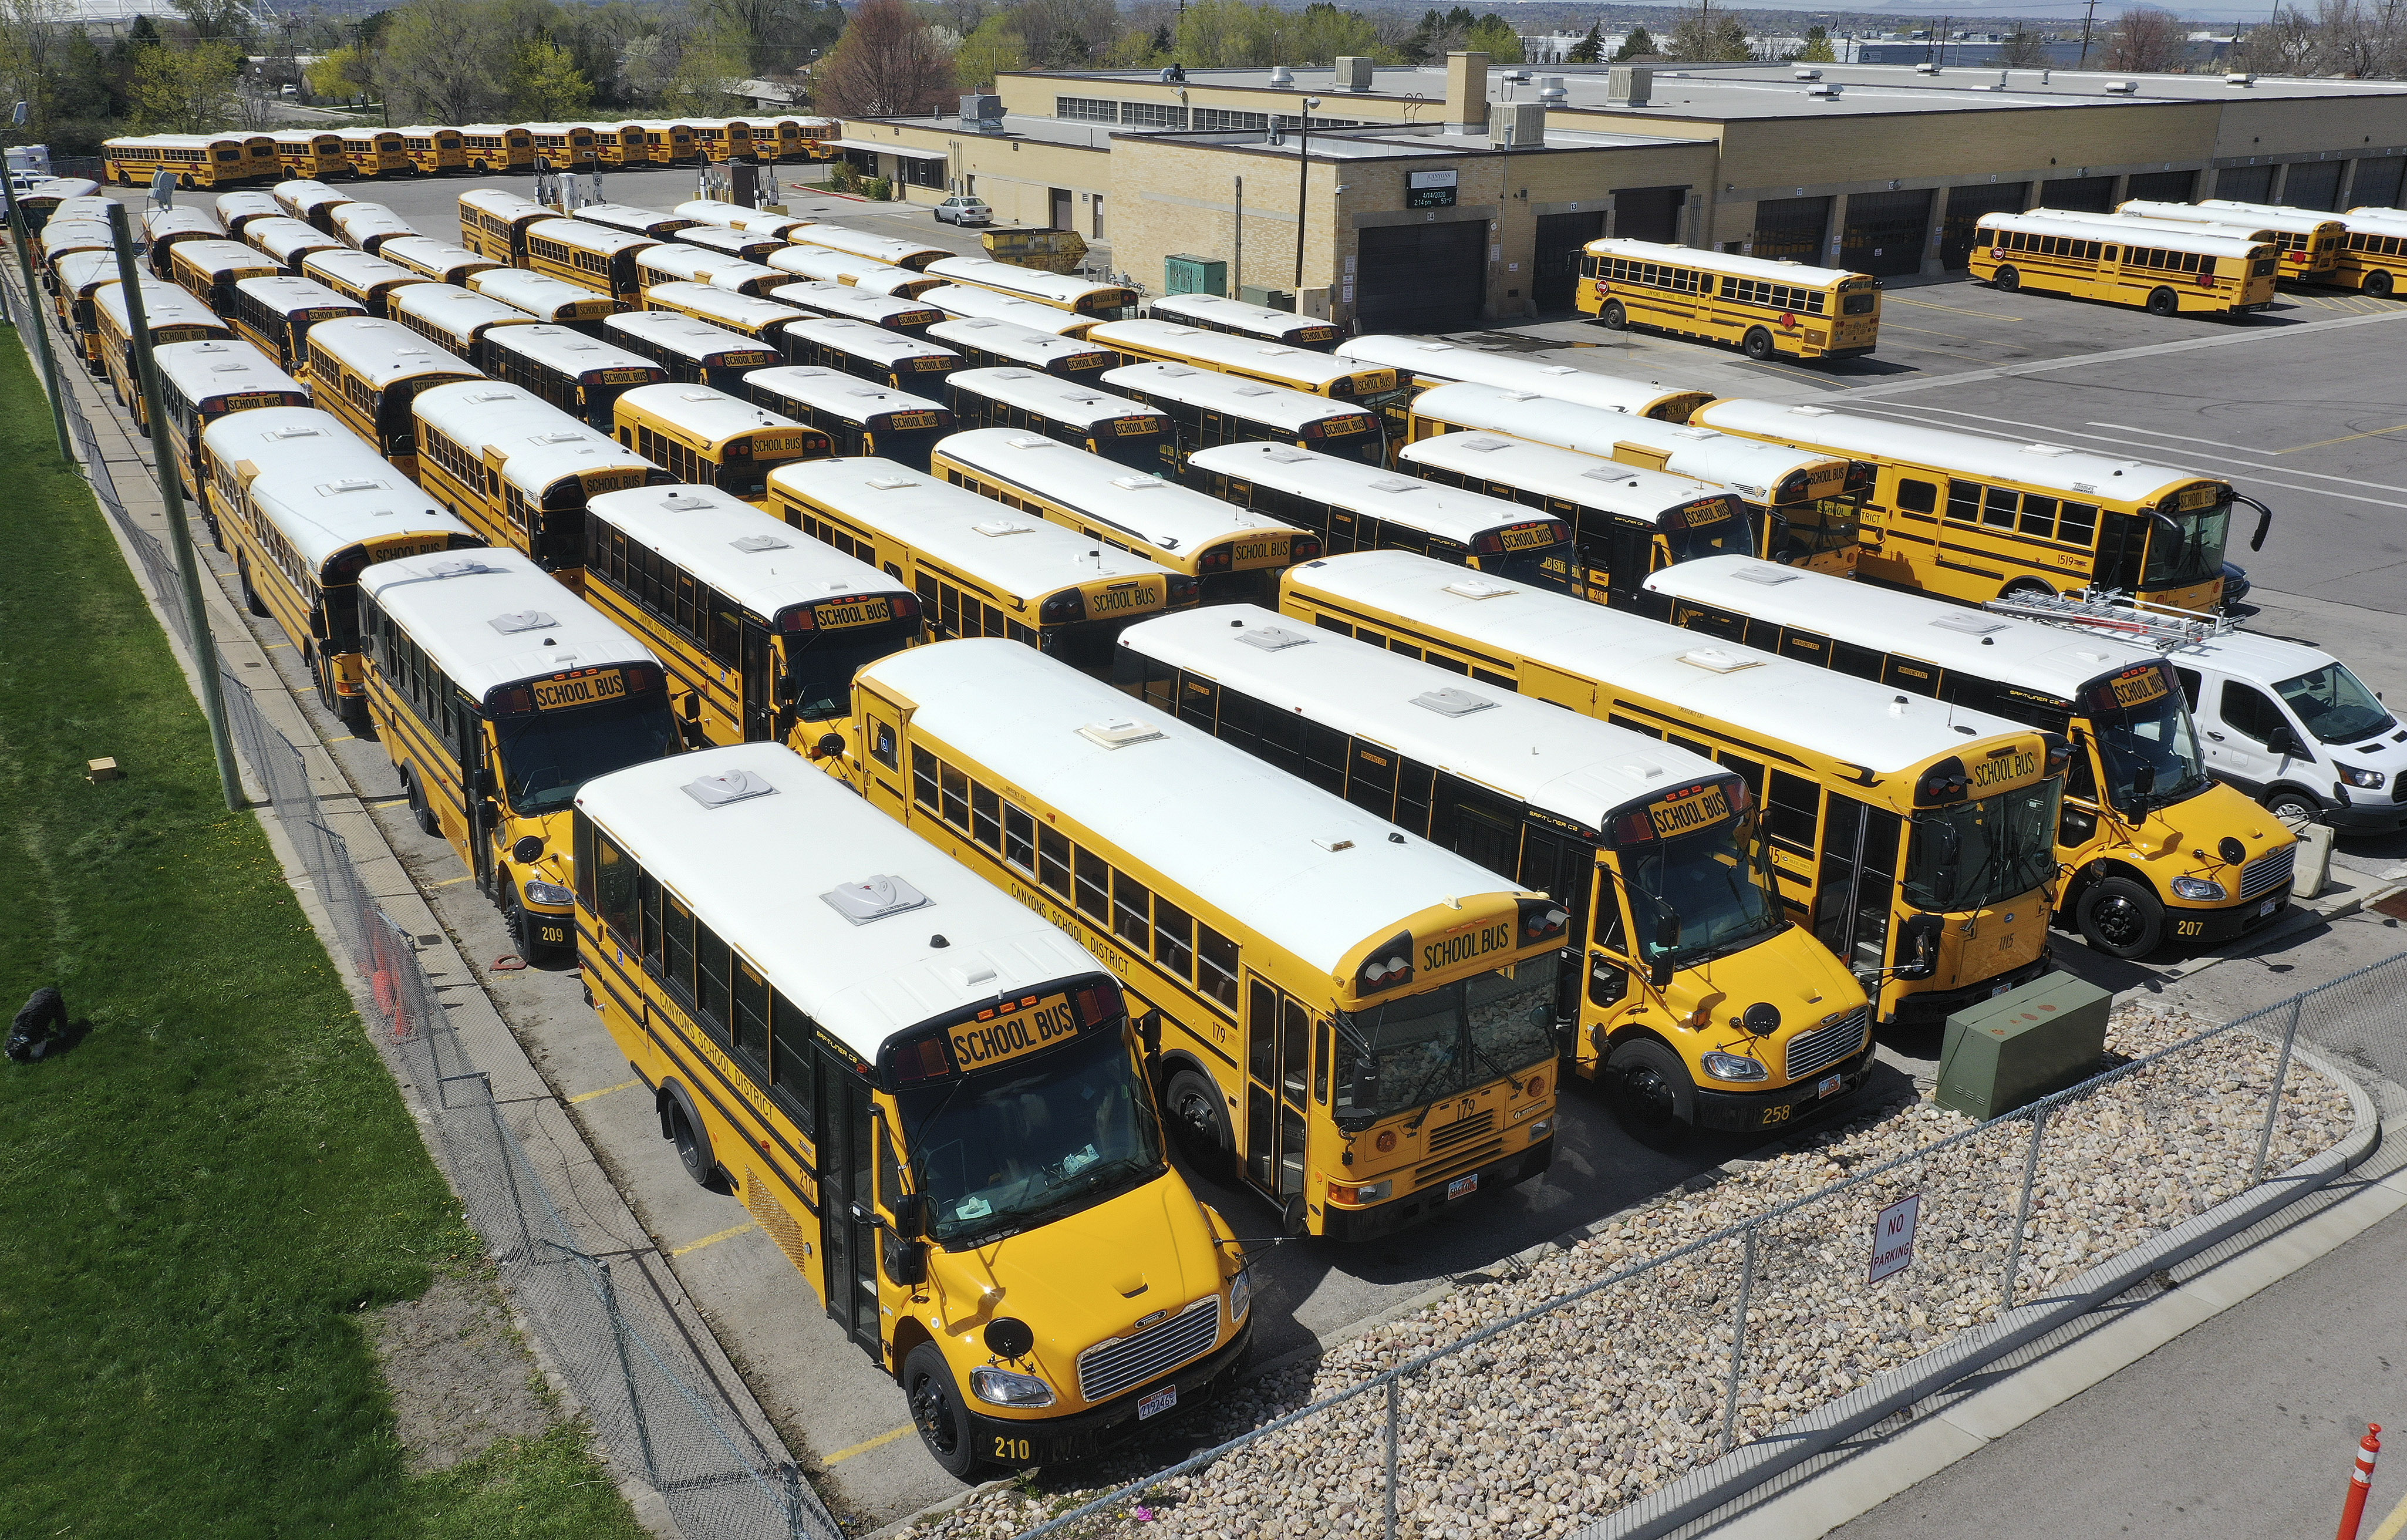 Canyons School District buses sit idle in a parking lot in Sandy on Tuesday, April 14, 2020. Utah's K-12 public schools will remain closed for in-person learning for the remainder of the academic year, state officials announced Tuesday.